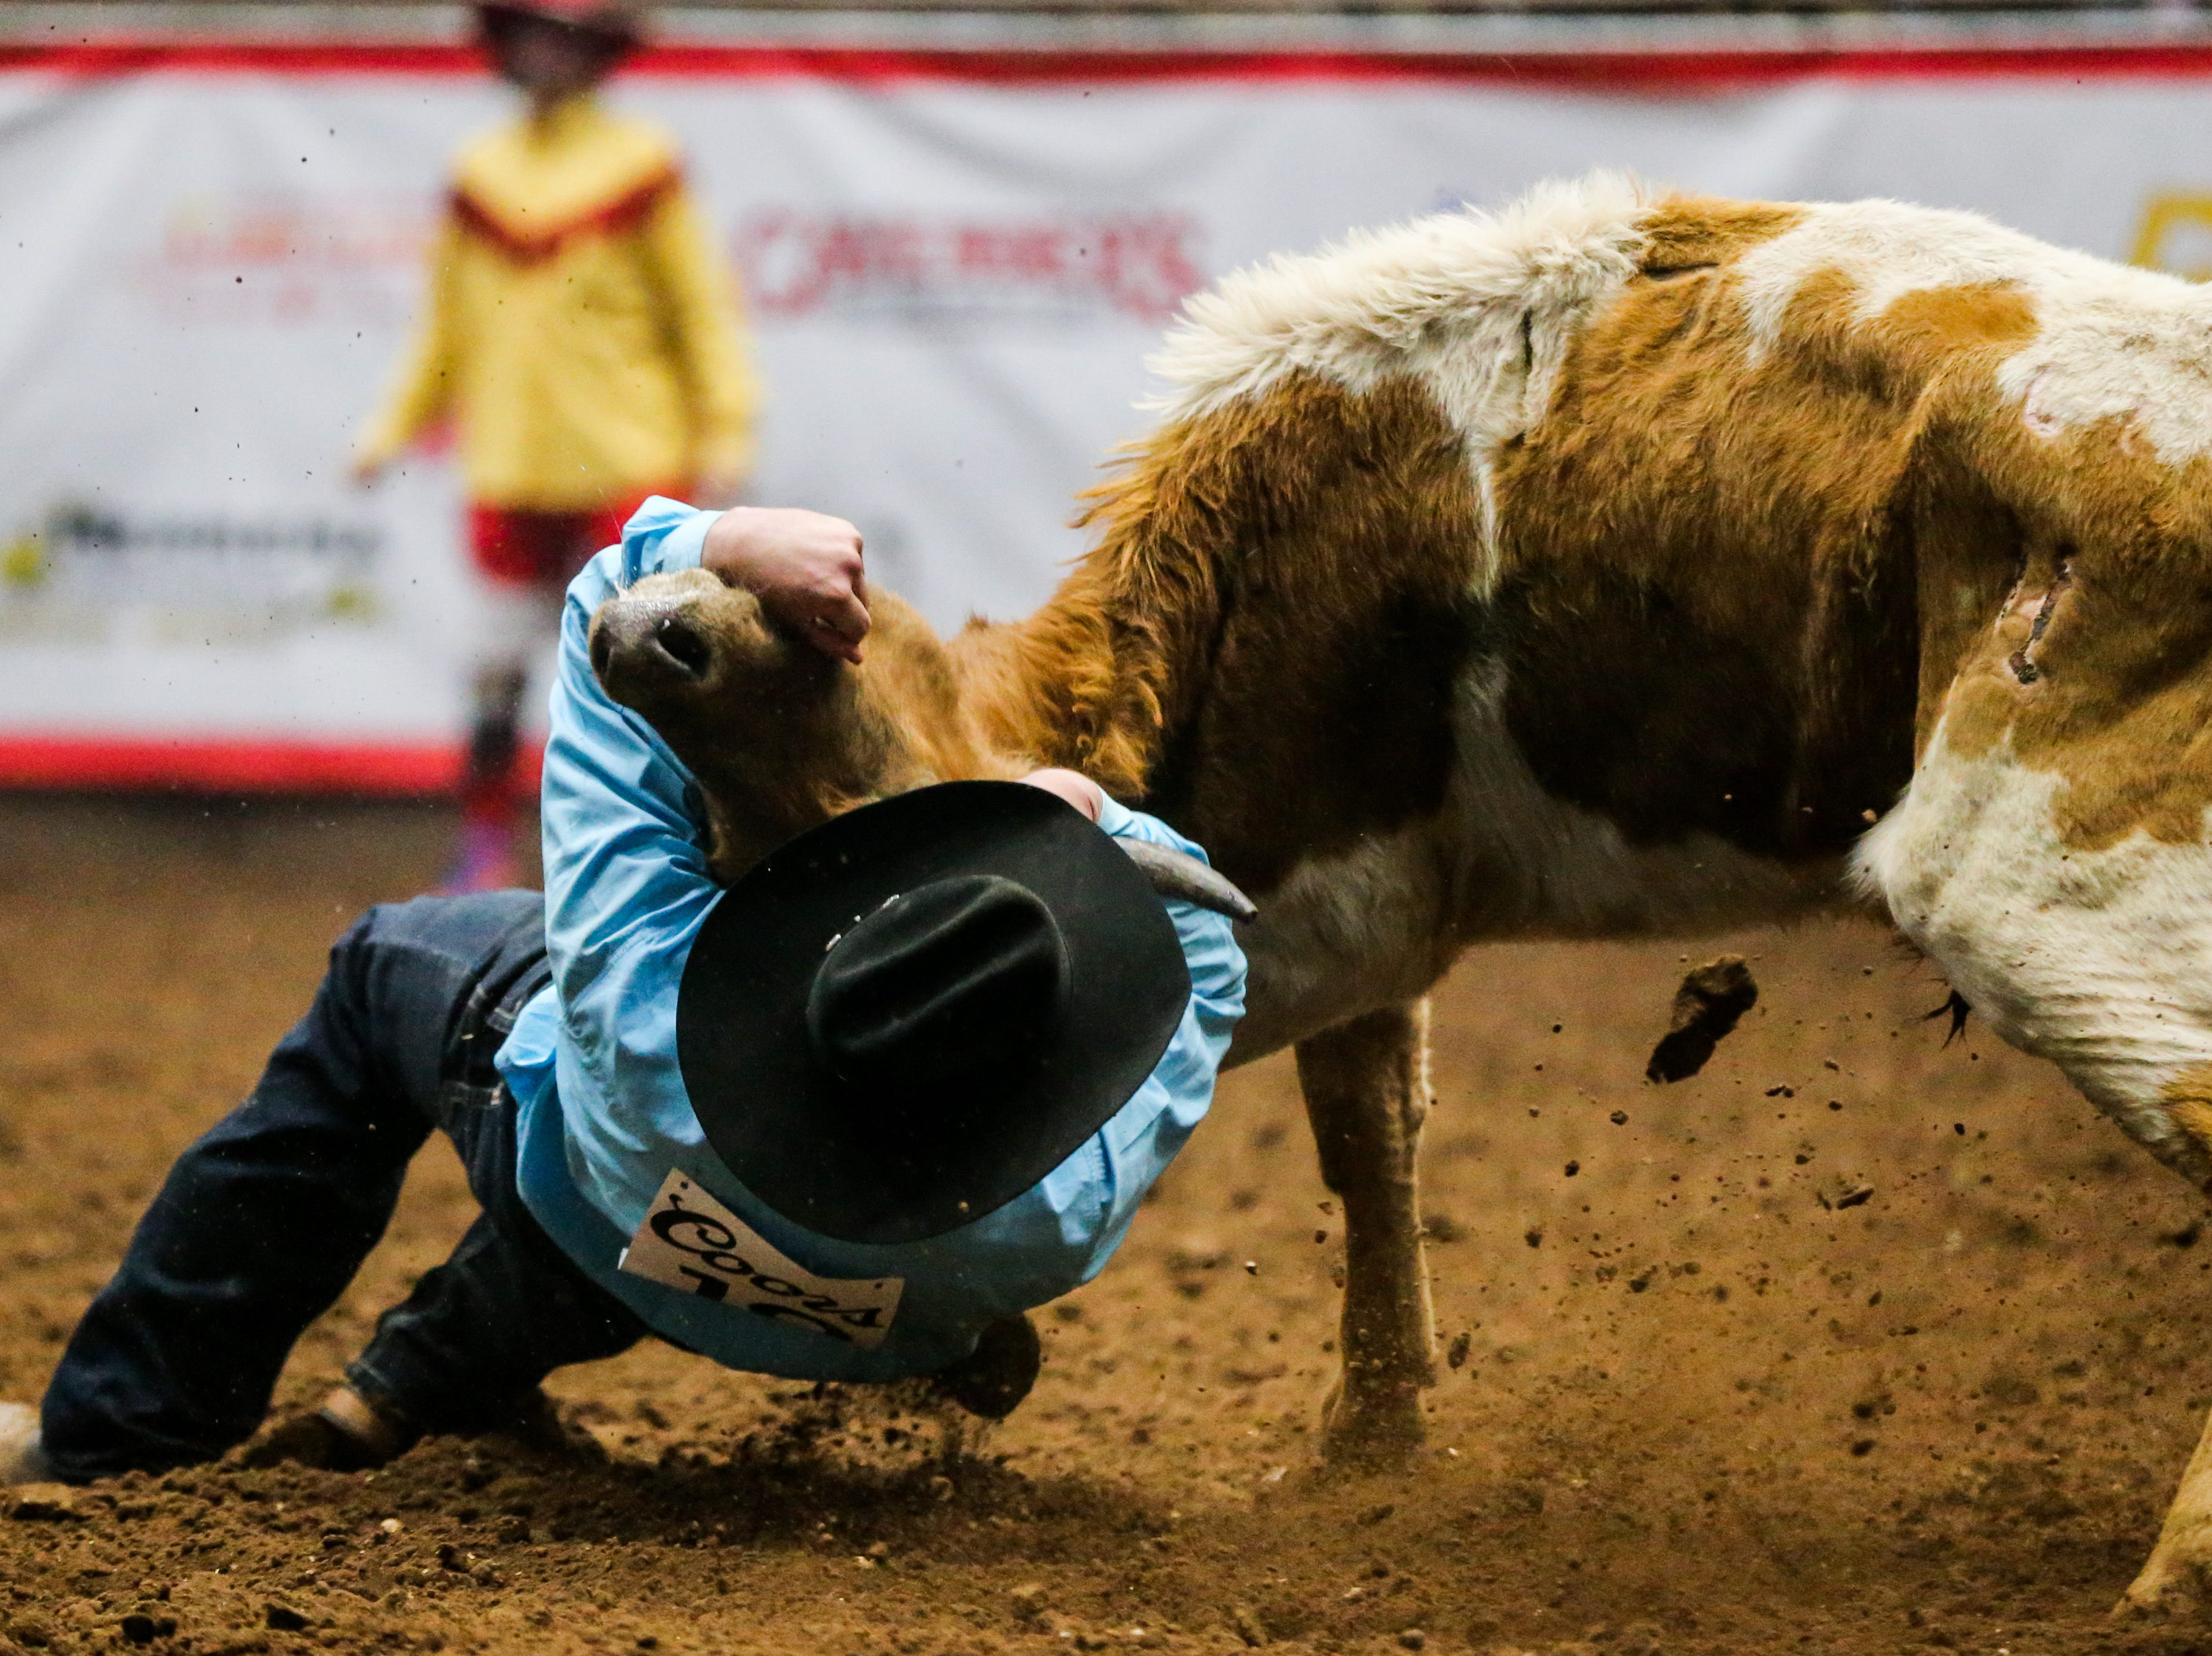 Bridger Anderson steer wrestle during the San Angelo Stock Show & Rodeo performance Thursday, Feb. 14, 2019, at Foster Communications Coliseum.